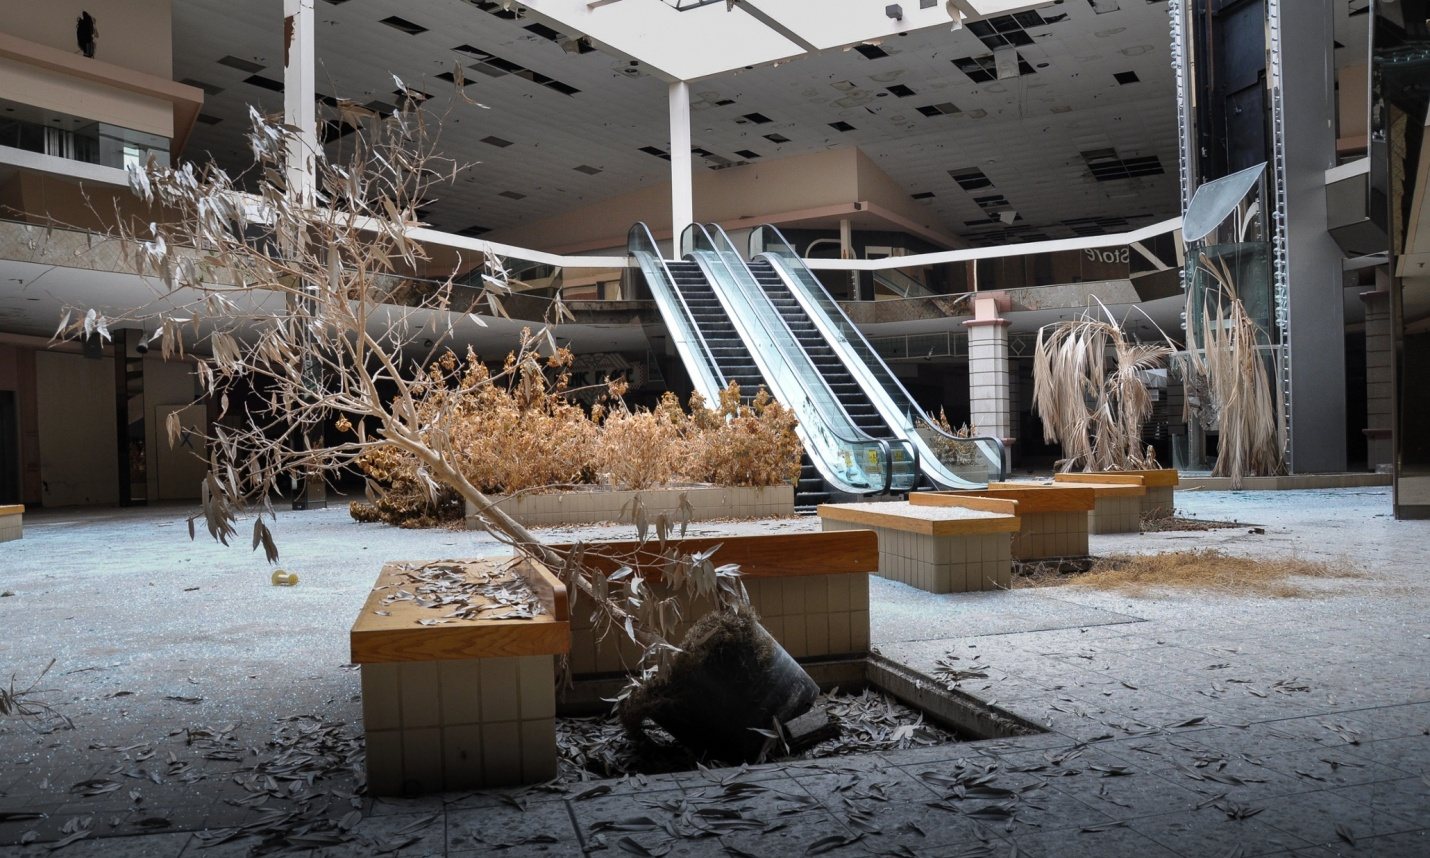 Rolling Acres shopping mall Akron, Ohio, USA. Foto di Seph Lawless per The Guardian